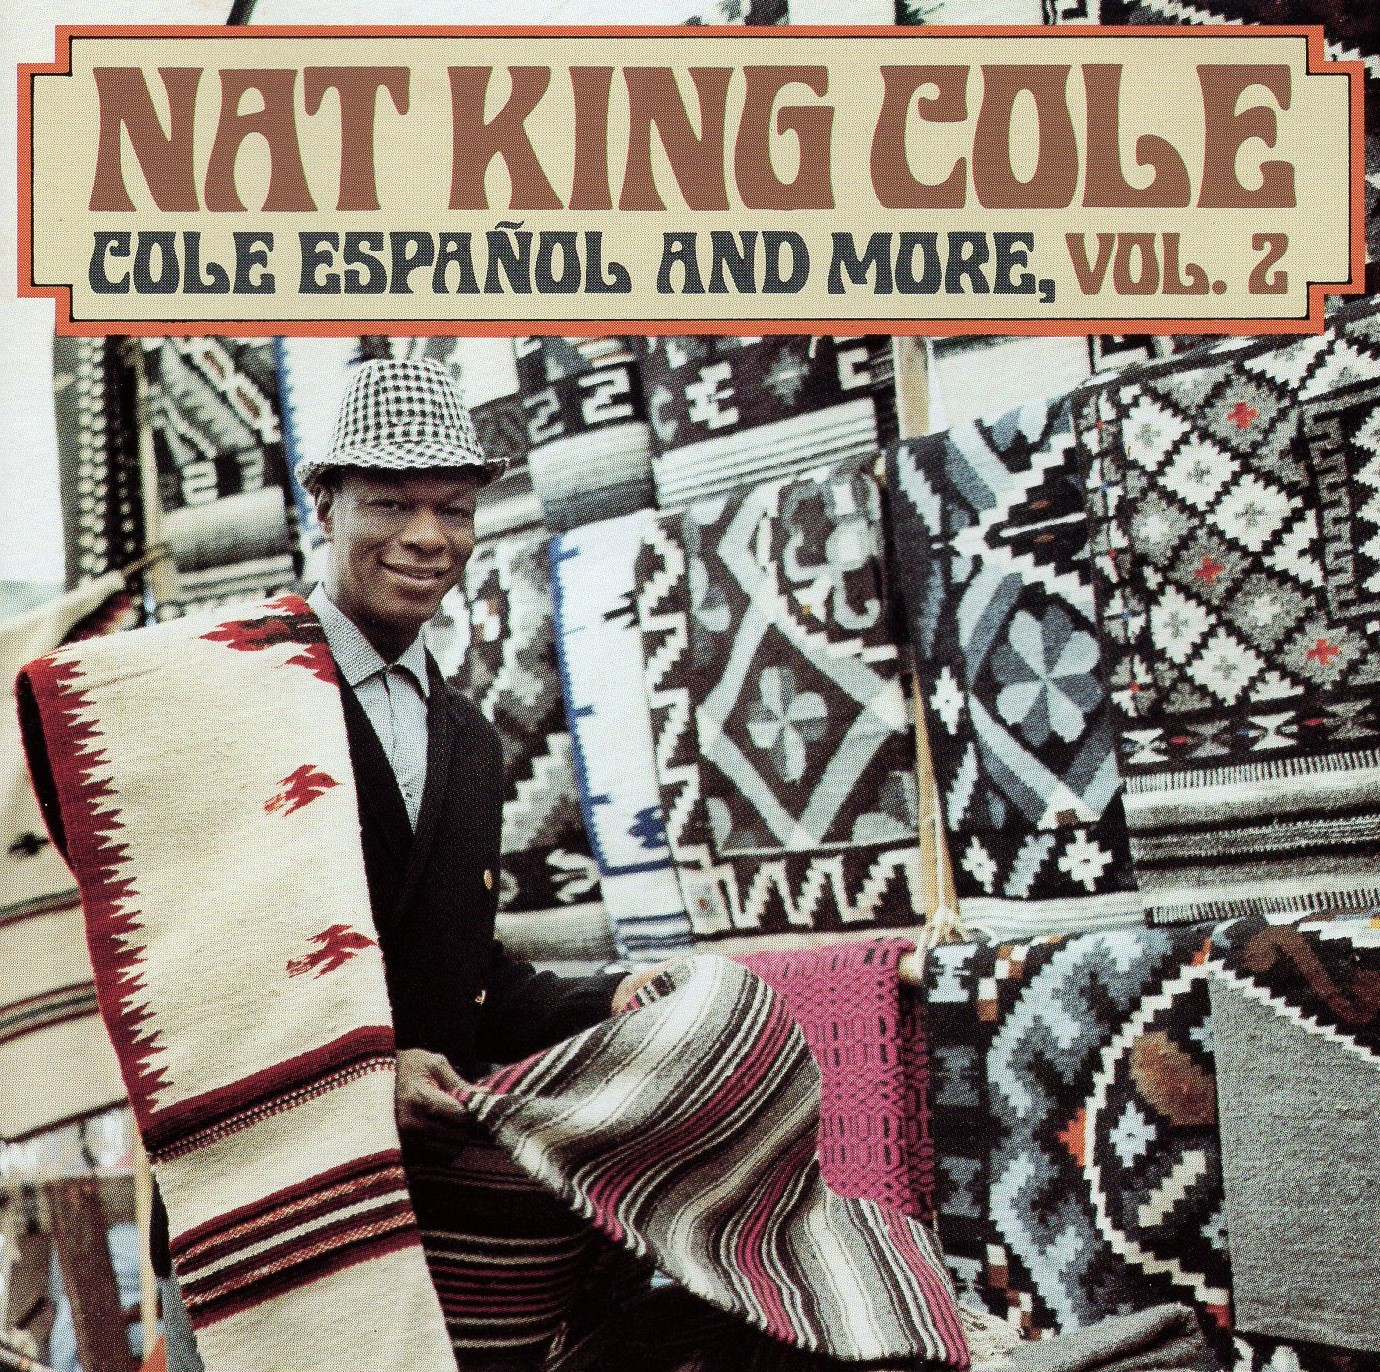 """Cole Espanol and More, Vol.2"" Nat King Cole"